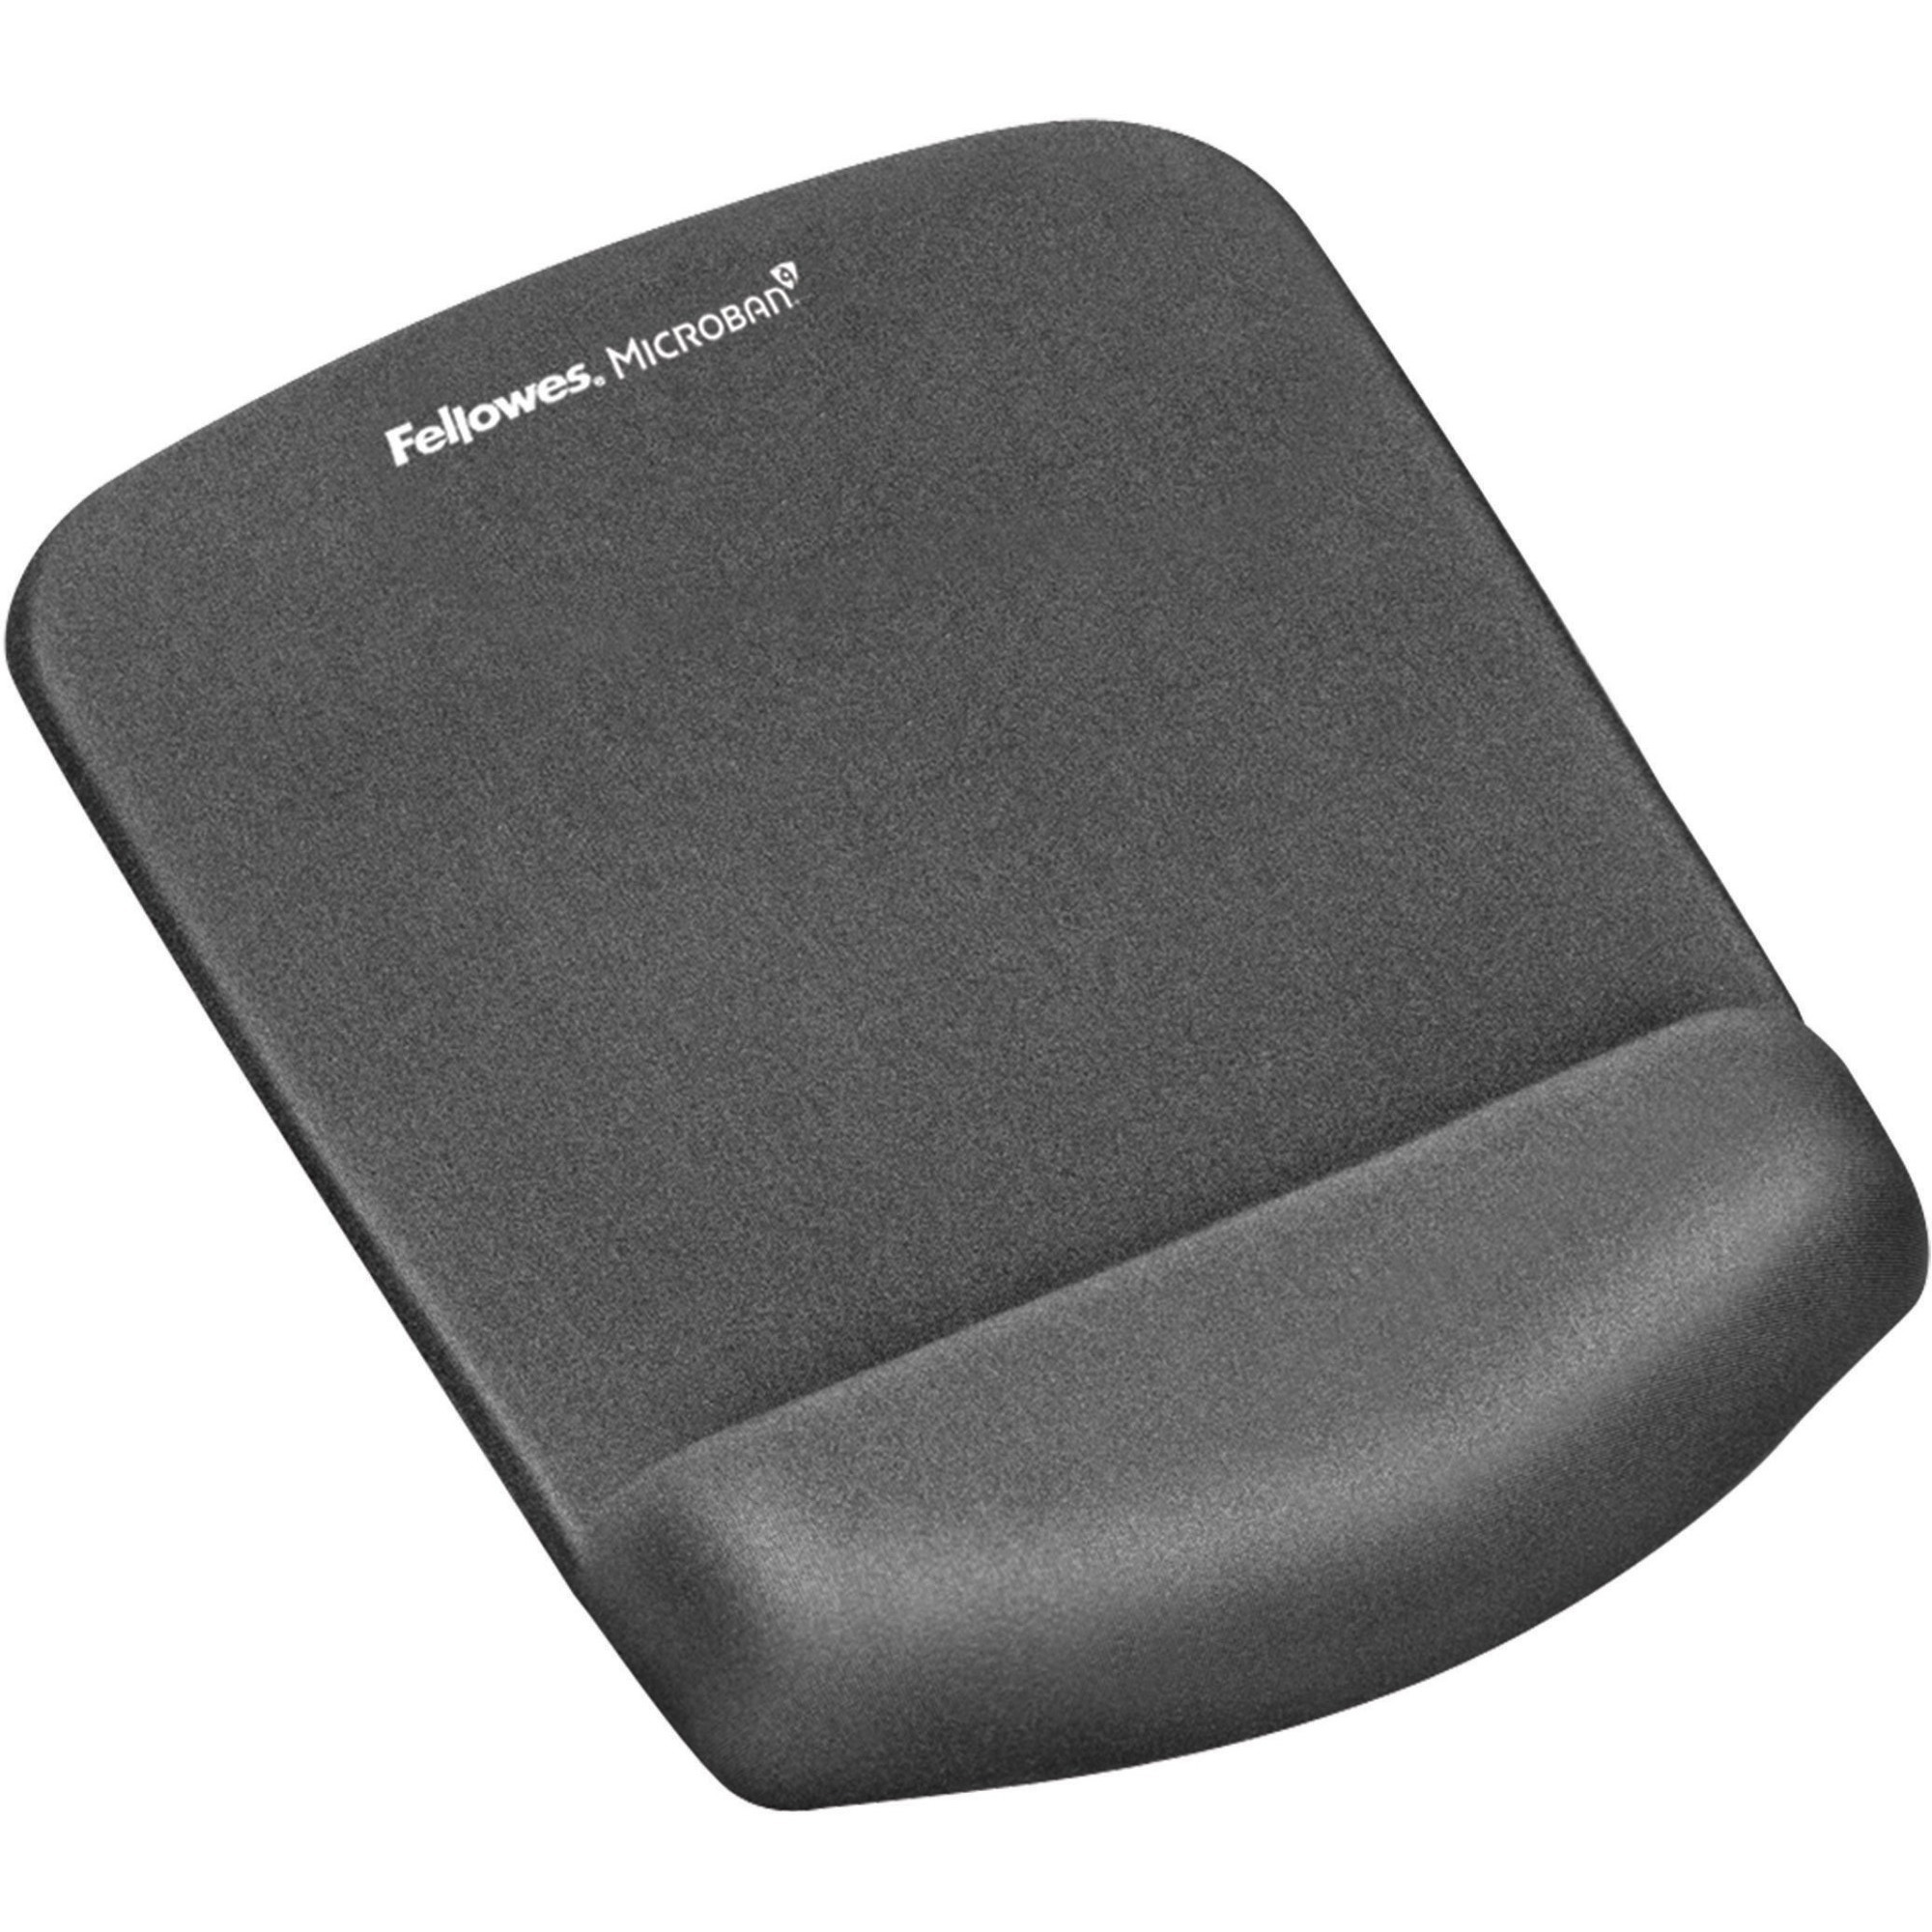 Fellowes, FEL9252201, PlushTouch™ Mouse Pad Wrist Rest with Microban® - Graphite, 1, Graphite